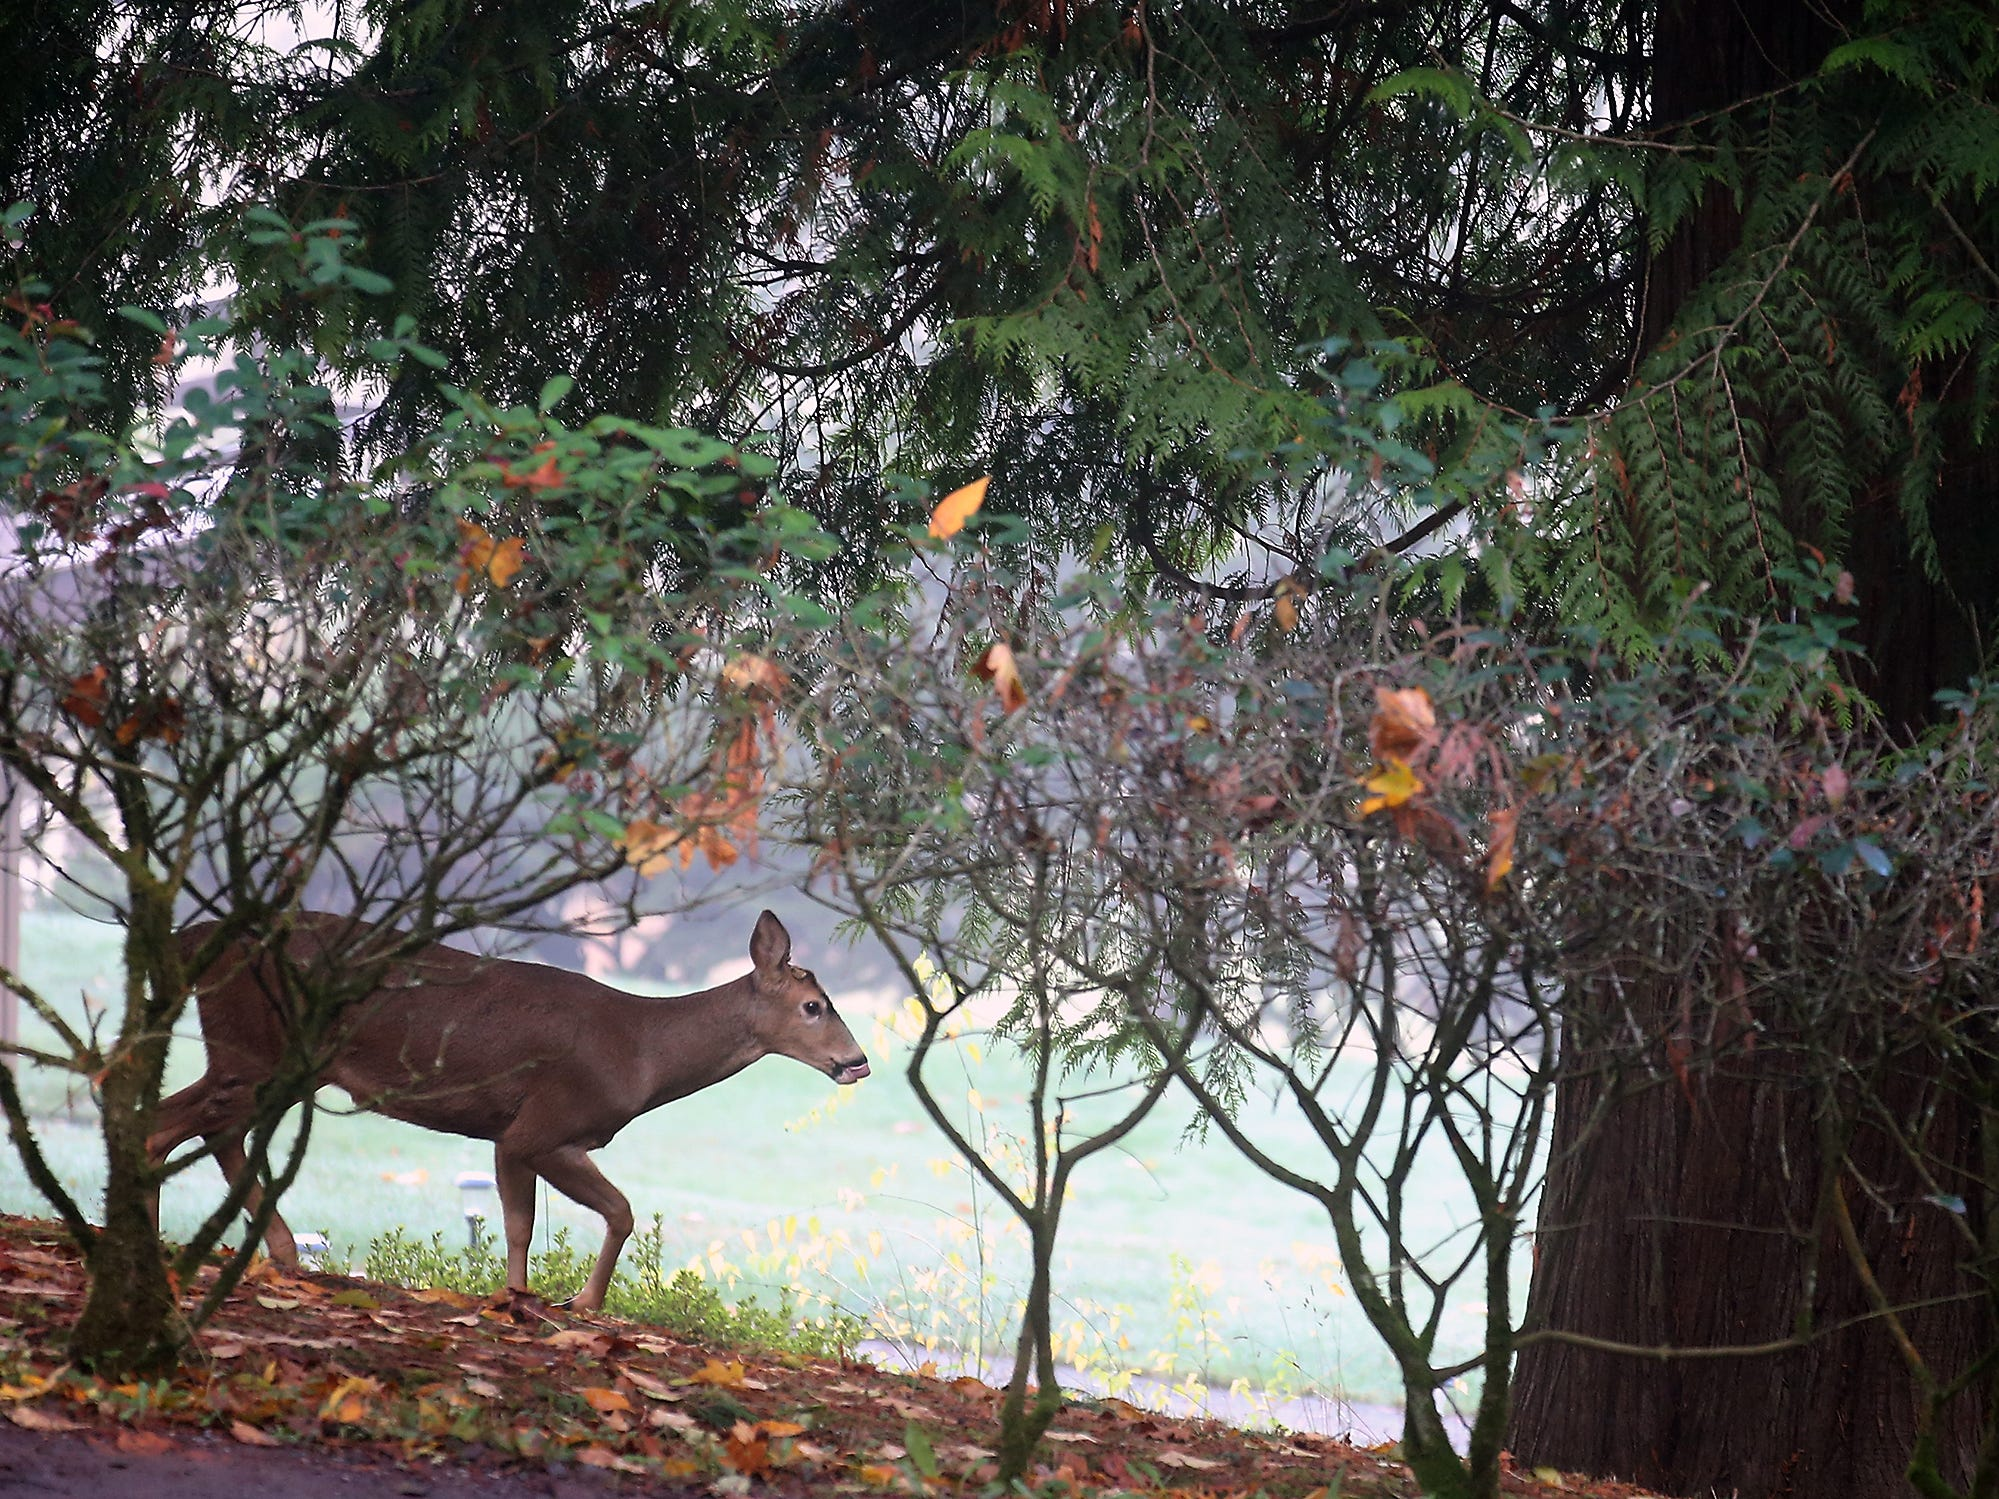 A deer gingerly moves past the shrubs in a yard near Brownsville on Tuesday, November 6, 2018.